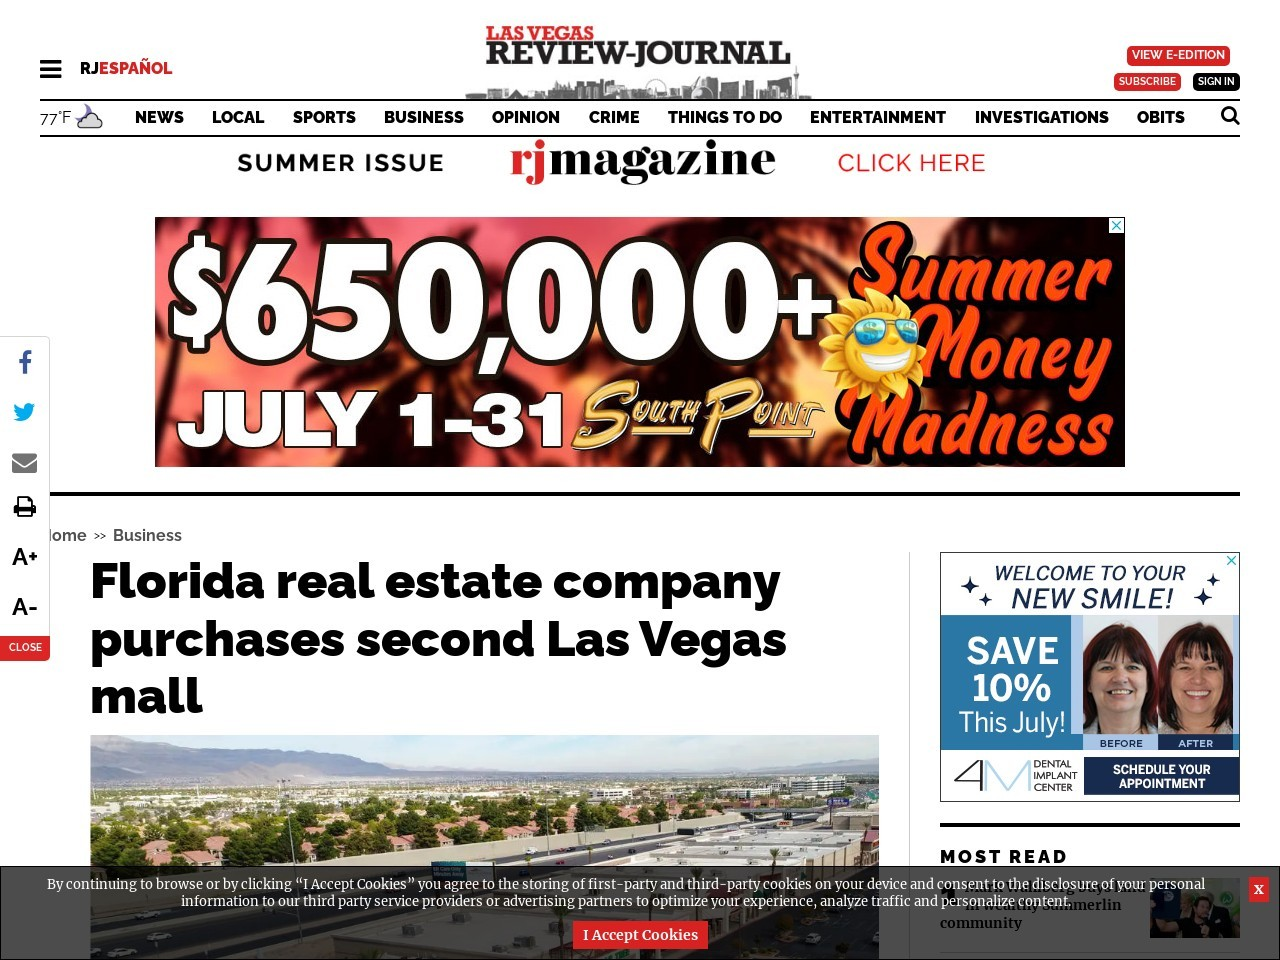 Florida real estate company purchases second Las Vegas mall